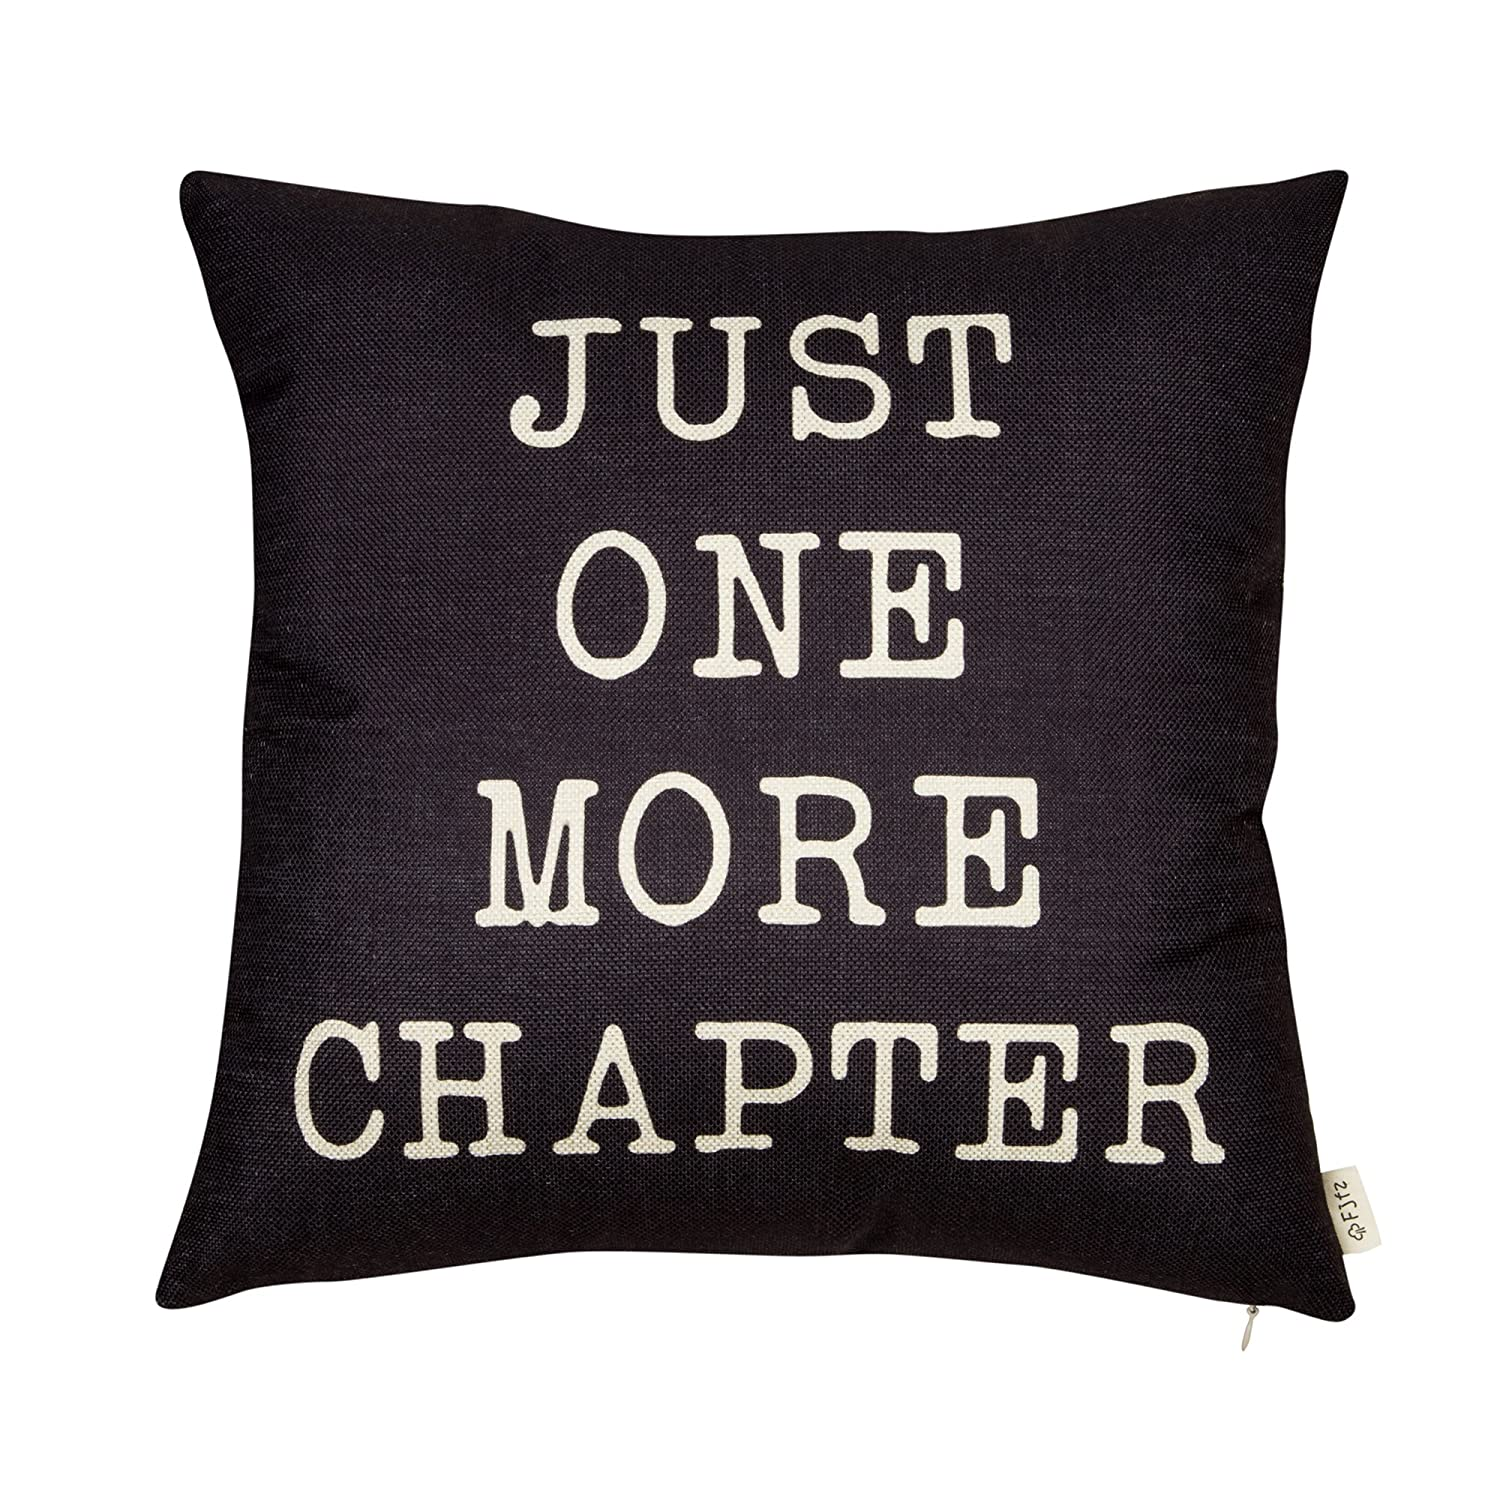 "Fjfz Just One More Chapter Motivational Sign Decor Reading Decoration Cotton Linen Home Decorative Throw Pillow Case Cushion Cover with Words for Book Lover Worm Sofa Couch, Black, 18"" x 18"""